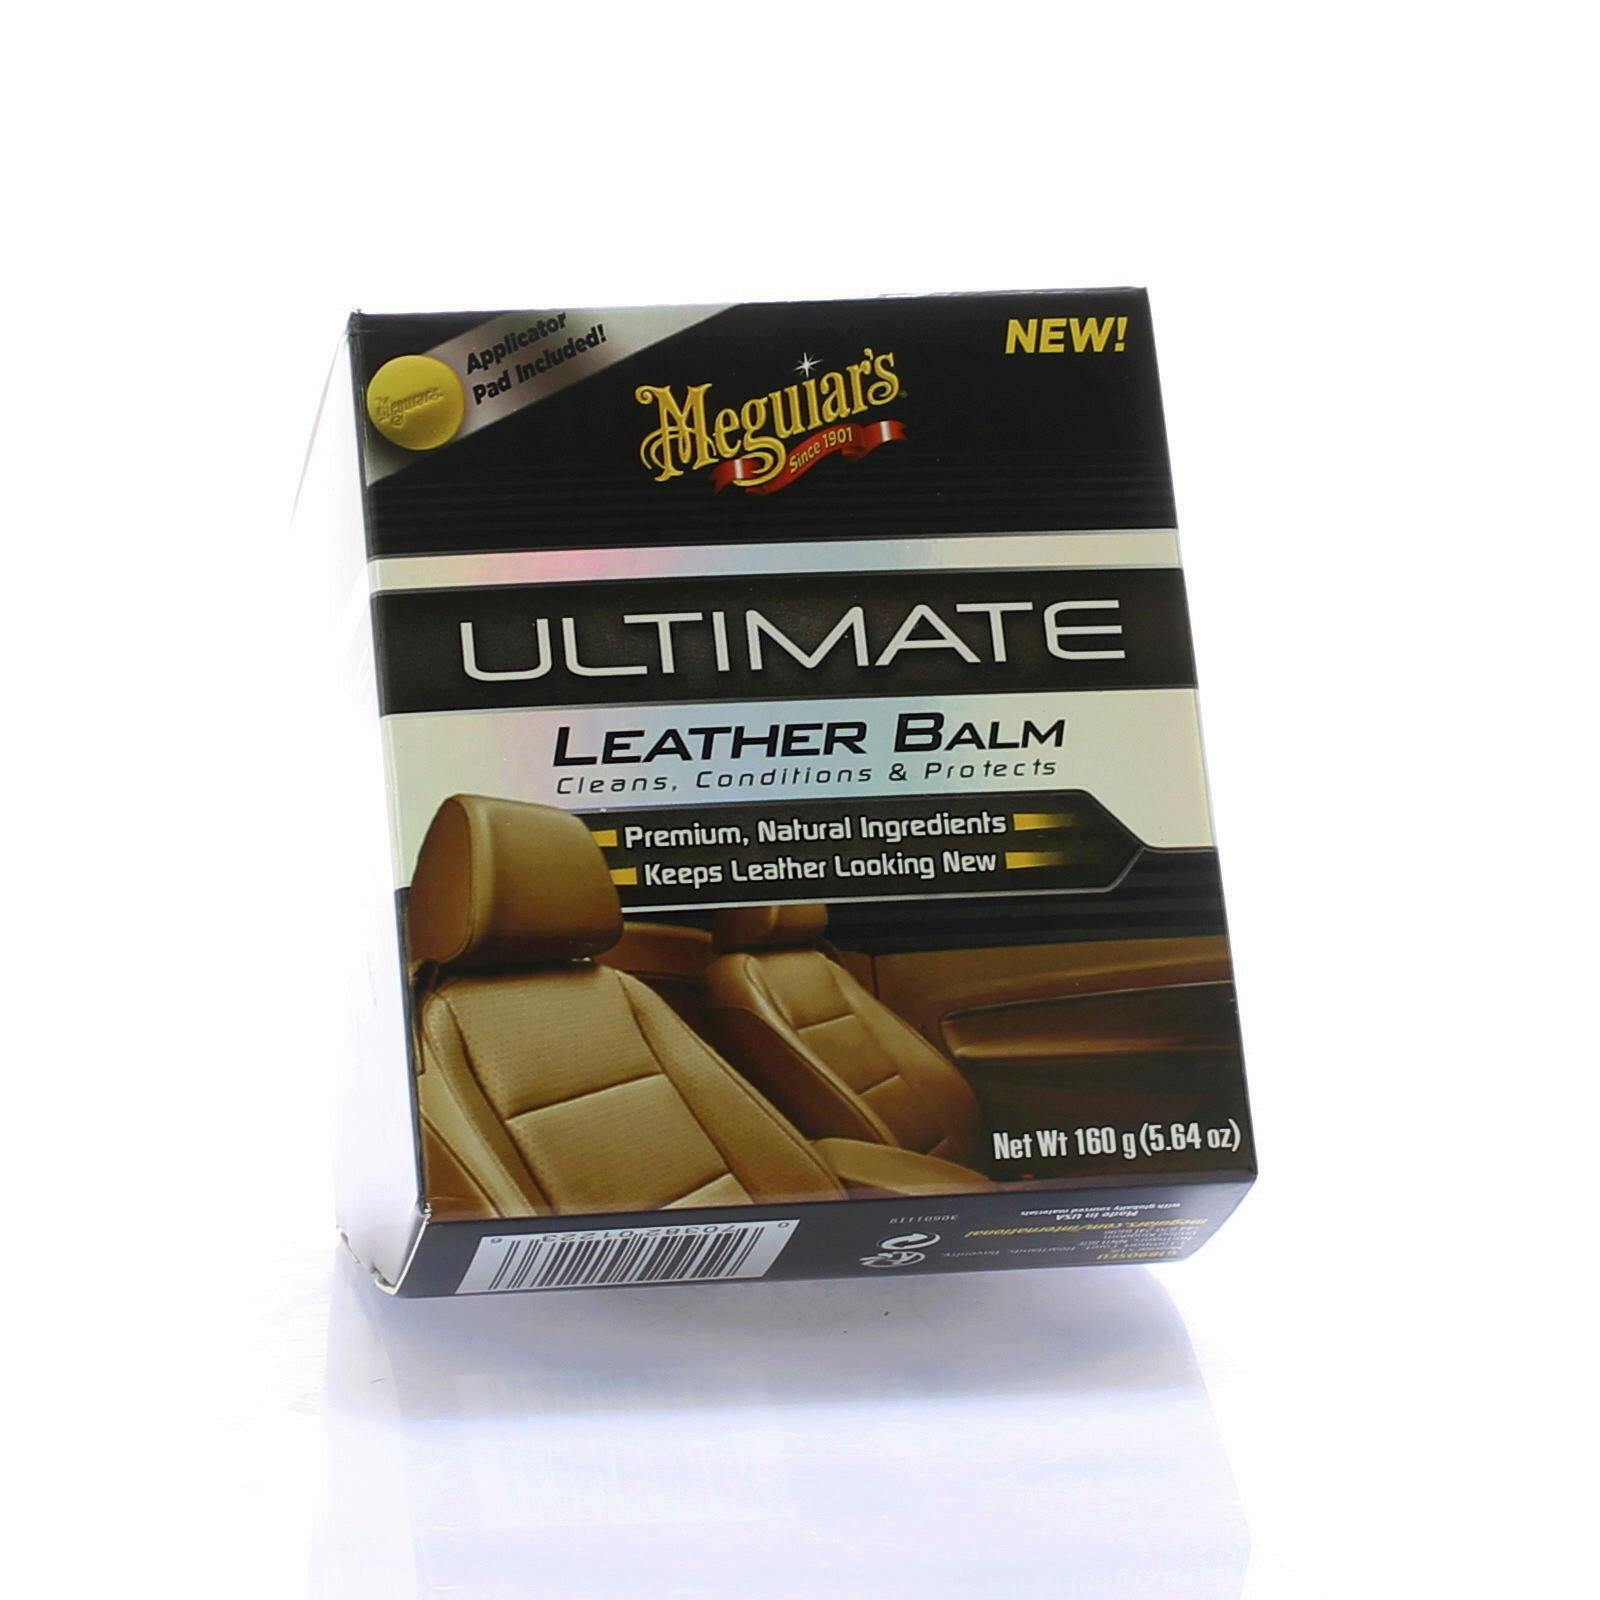 MEGUIARS Ultimate Leather Balm 142g